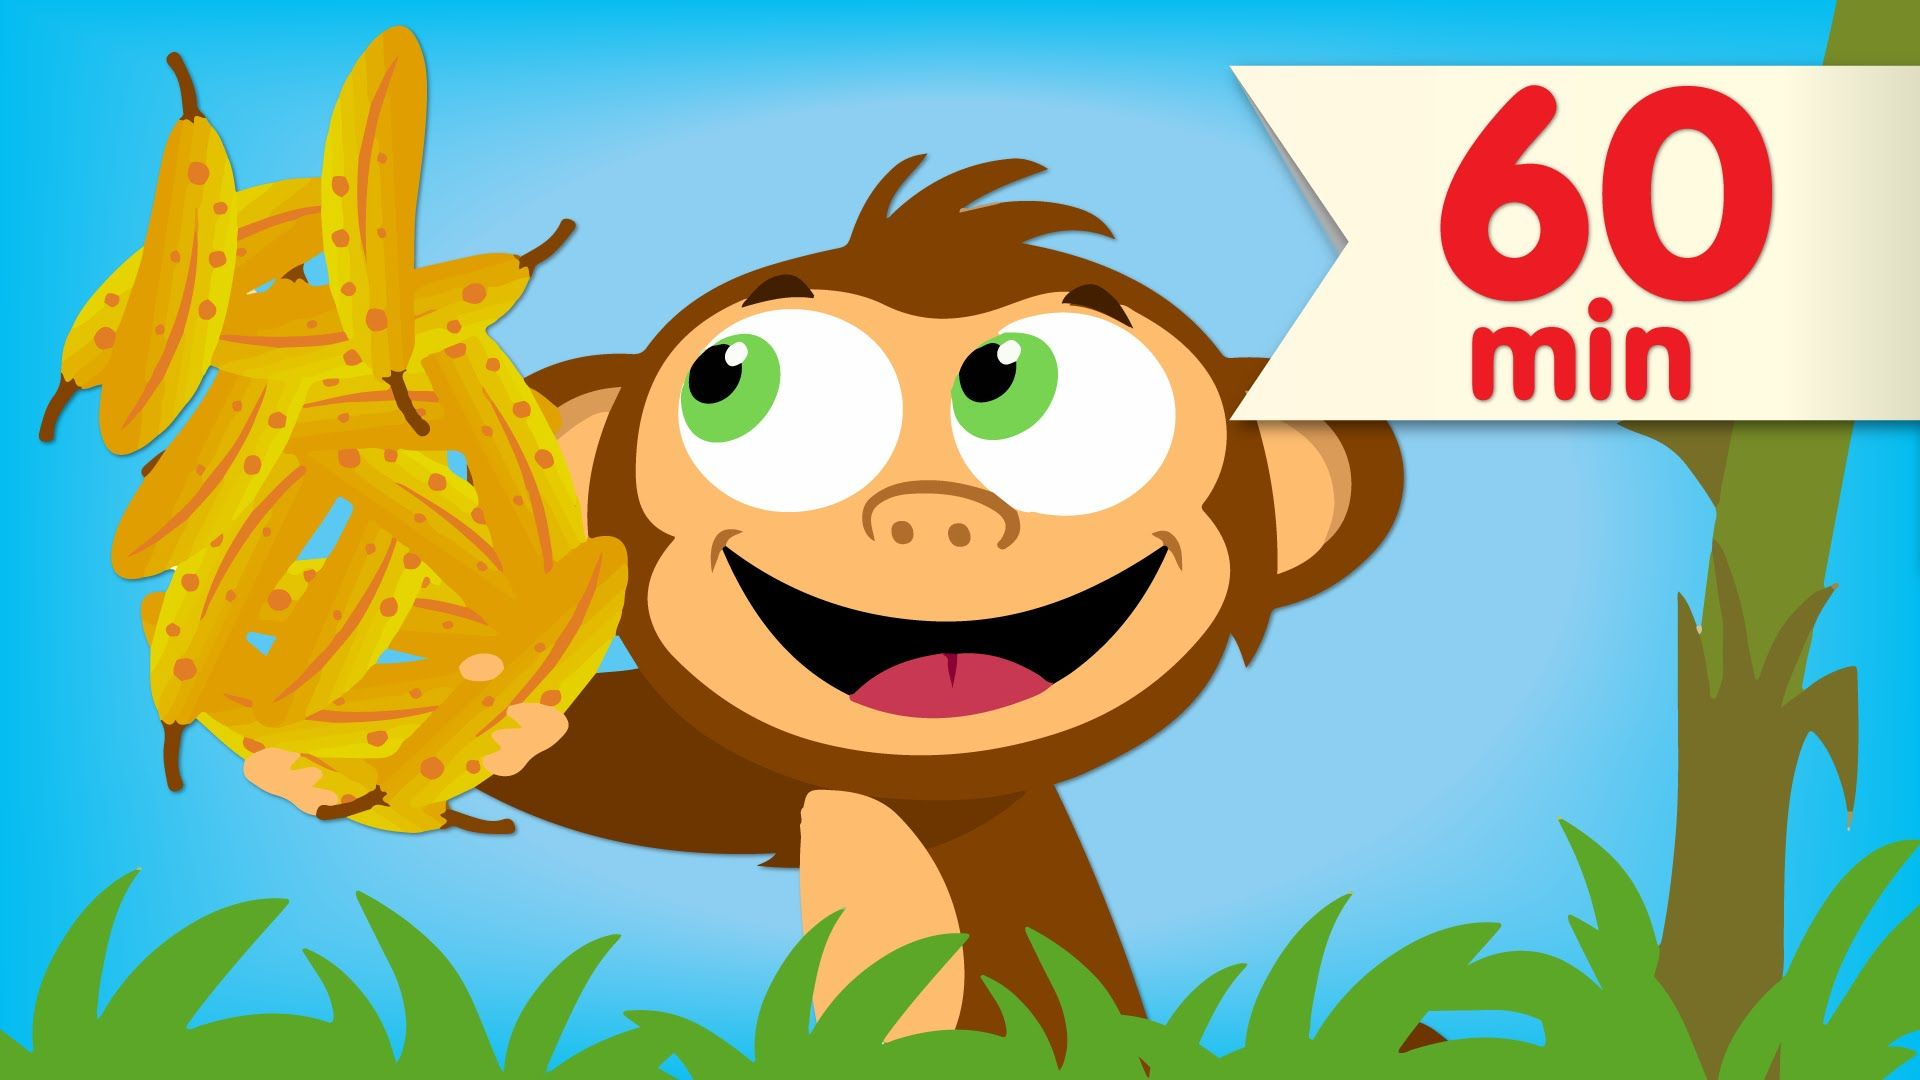 Practice Counting To 20 With A Pair Of Funny Monkeys In